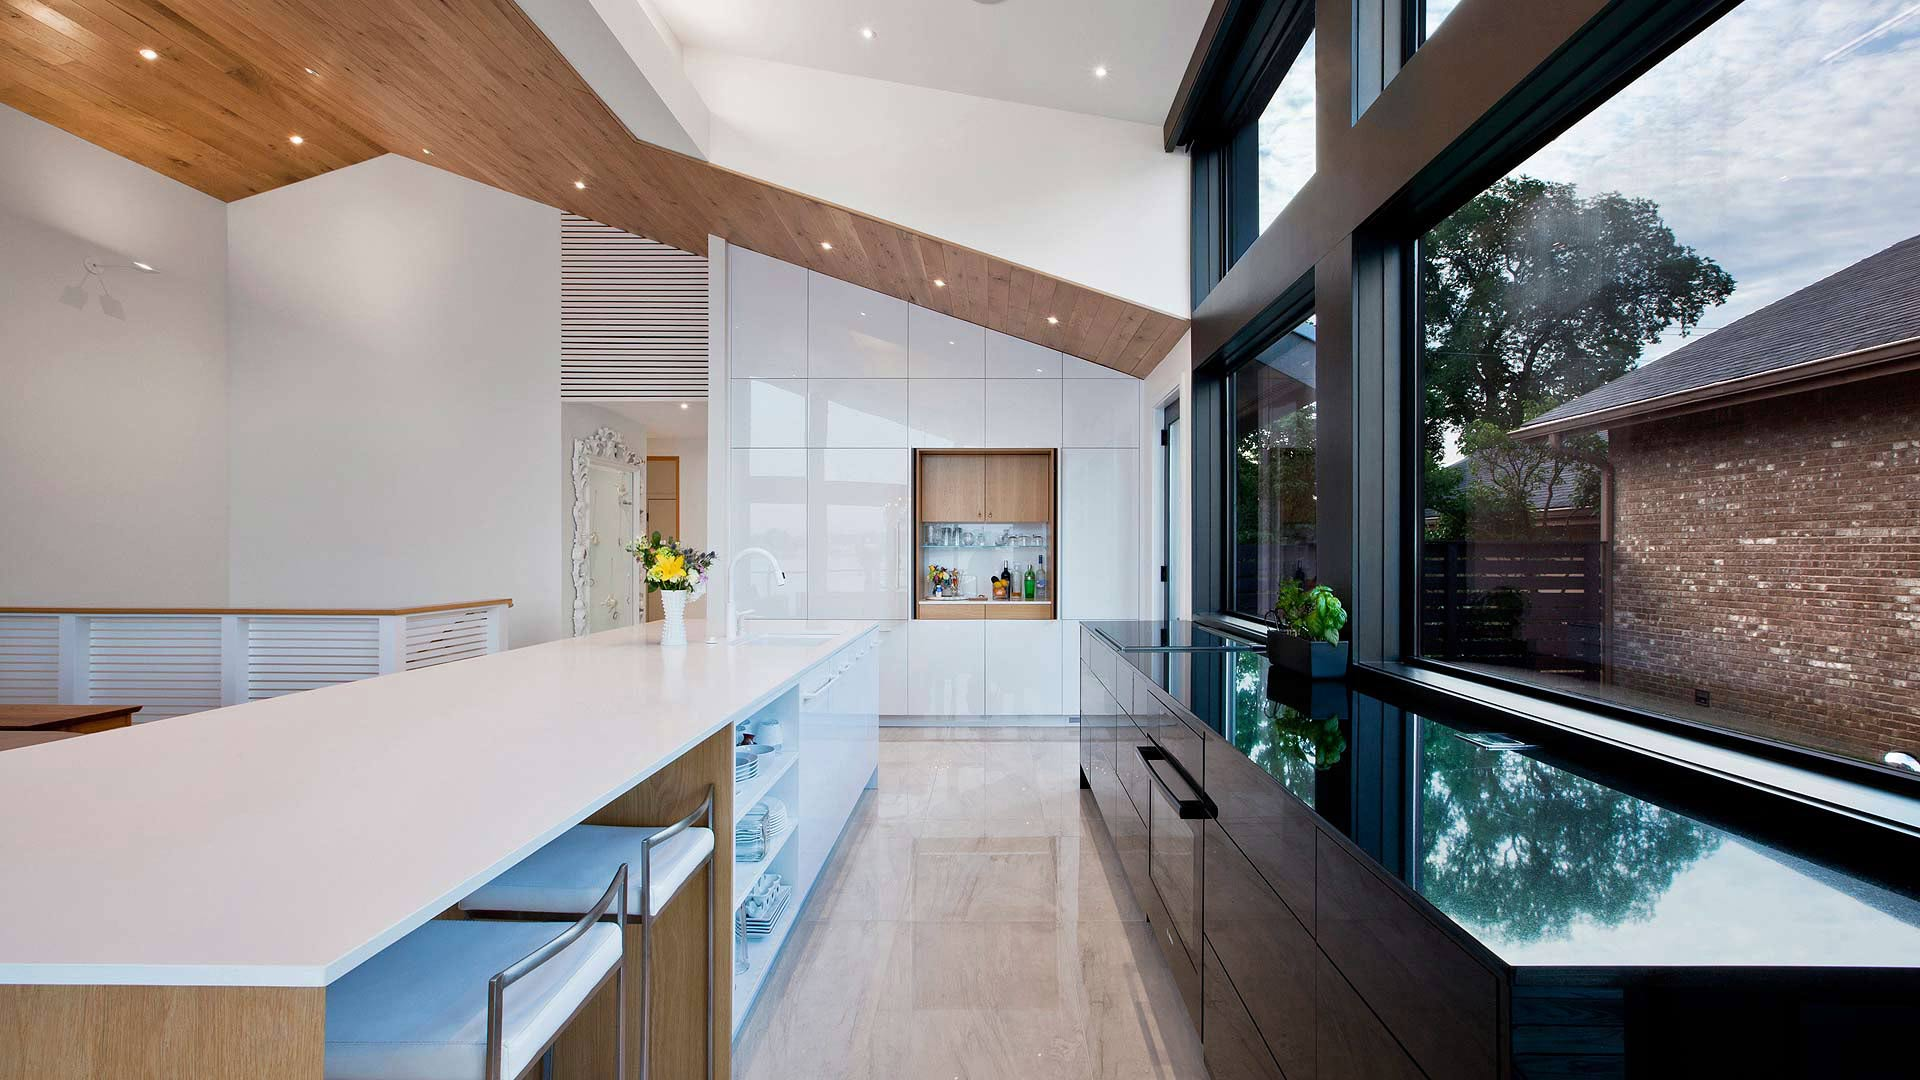 New kitchen is highlighted by the giant south facing dormer, hidden beverage counter, giant 14-foot island, and vaulted white oak ceiling - Modern Lakehouse Renovation - Clearwater